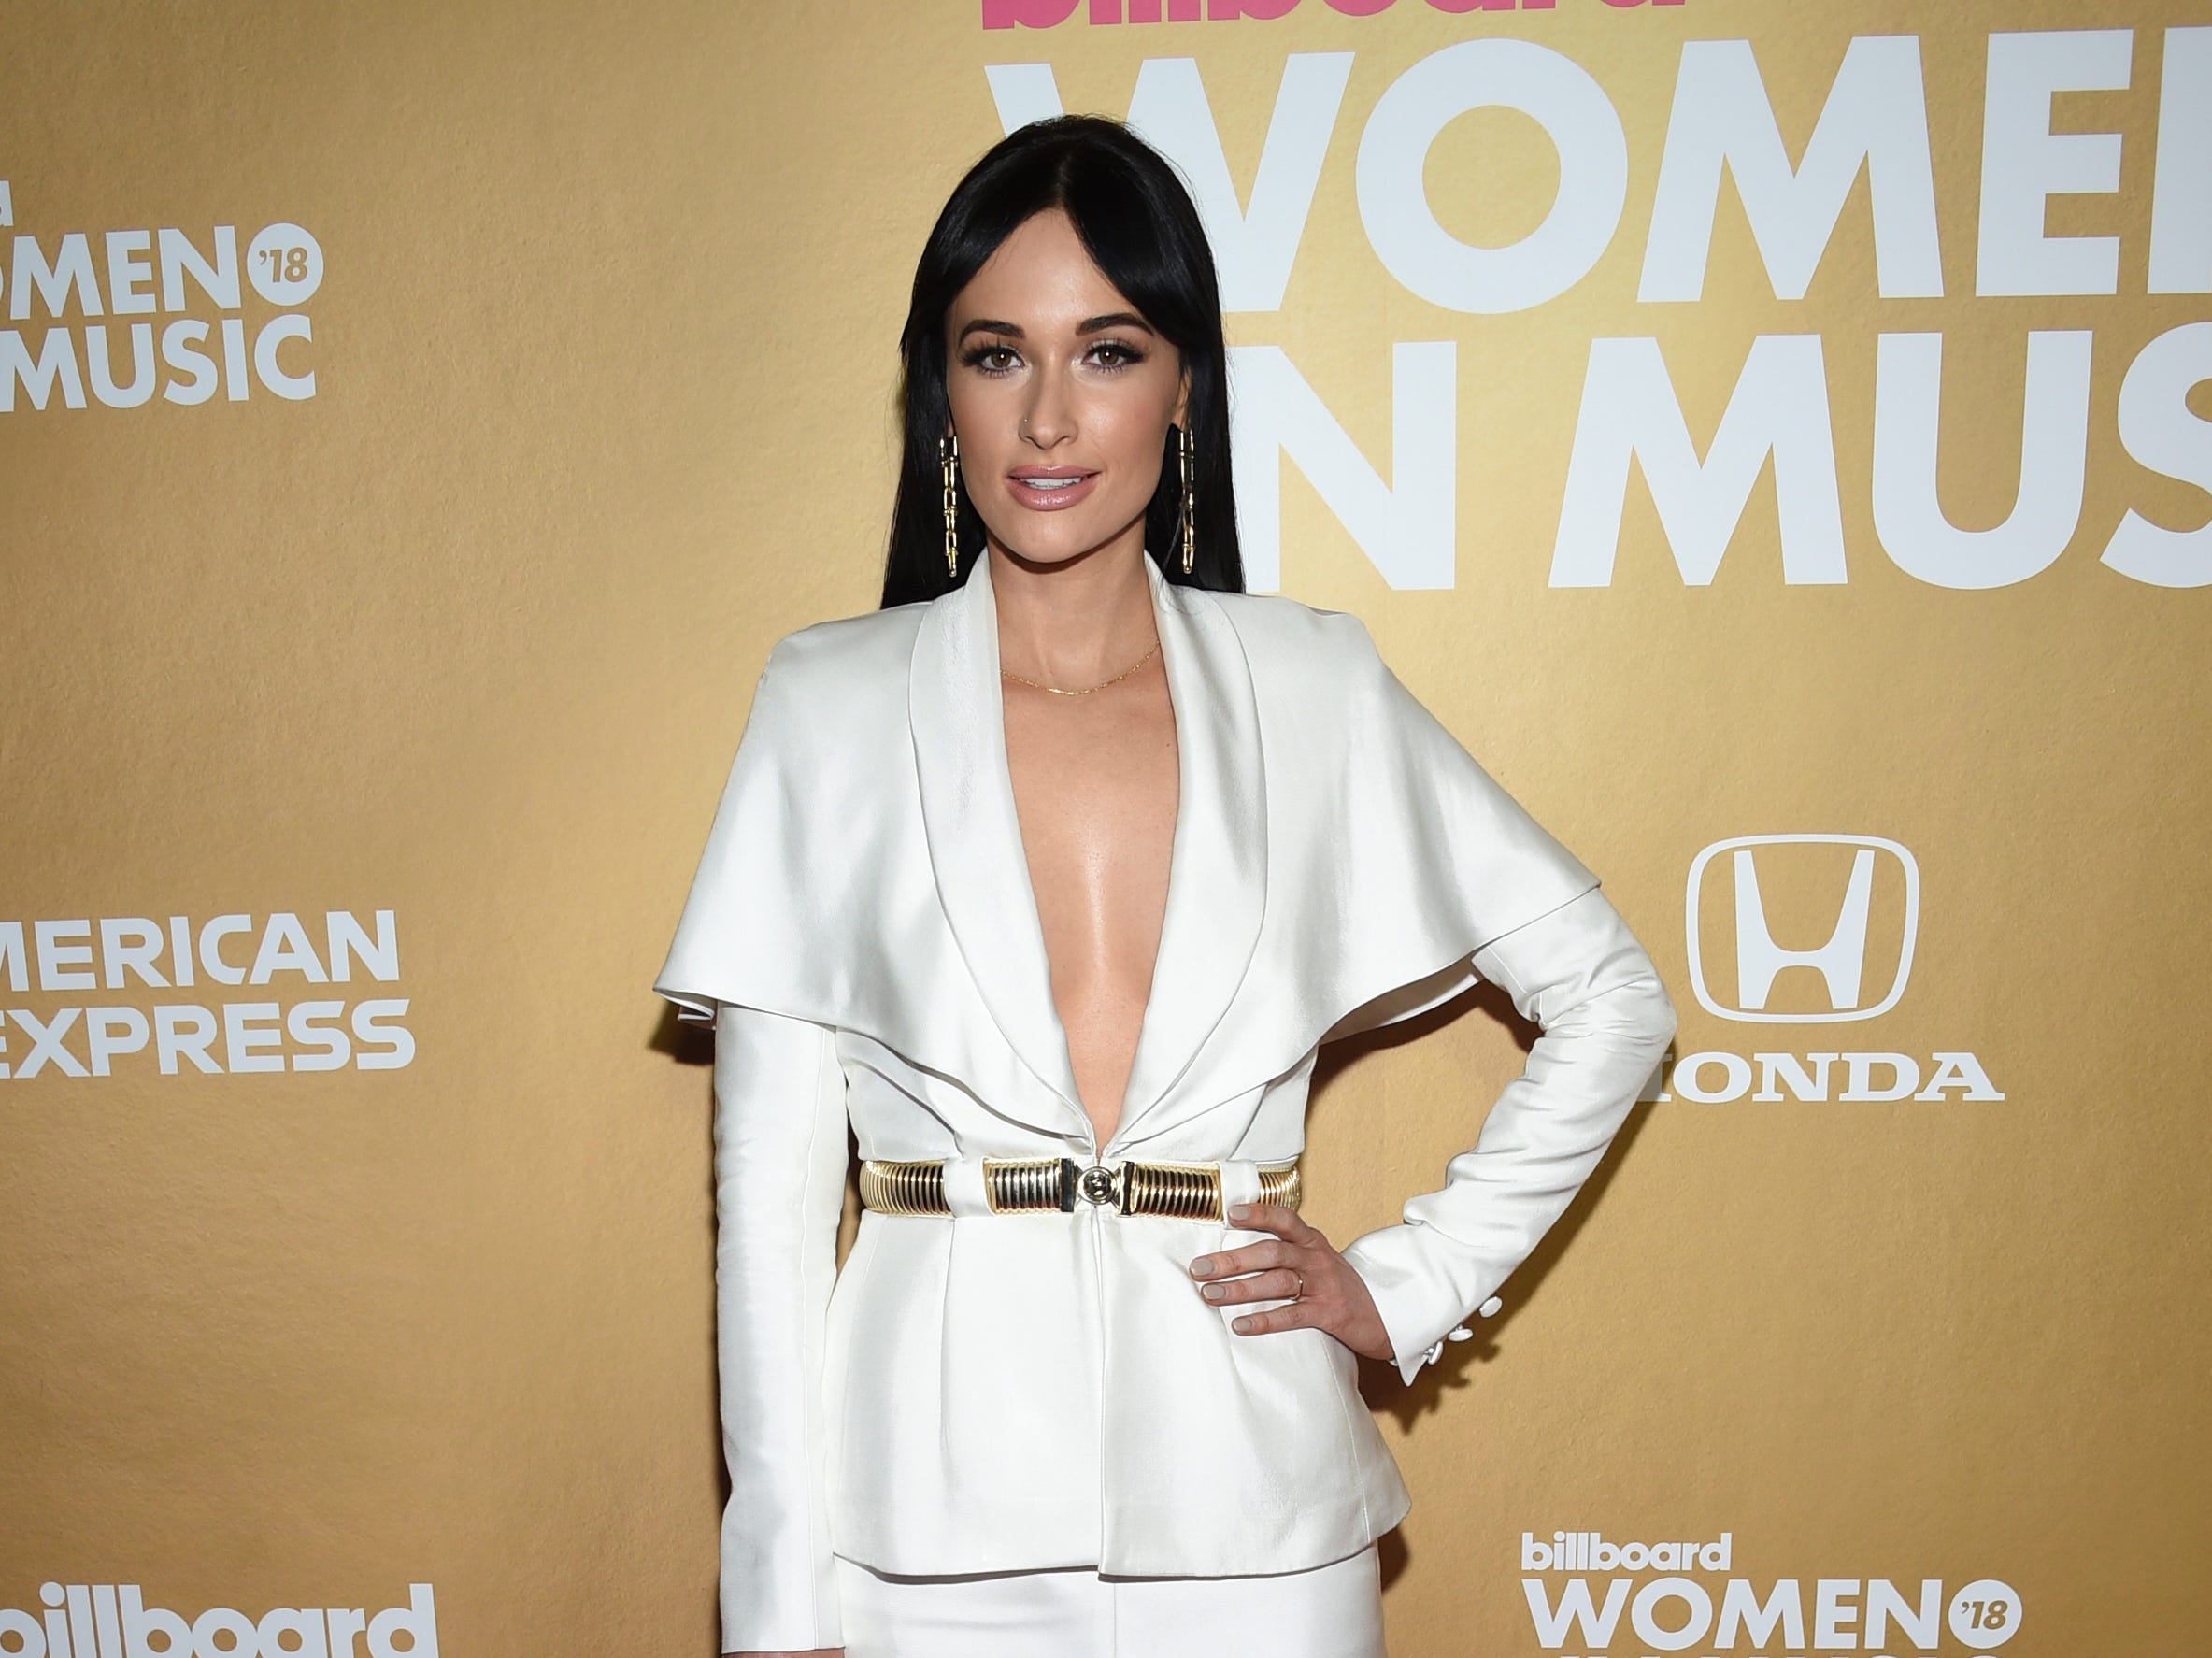 Kacey Musgraves attends the 13th annual Billboard Women in Music event at Pier 36 on Thursday, Dec. 6, 2018, in New York. (Photo by Evan Agostini/Invision/AP) ORG XMIT: NYAK101